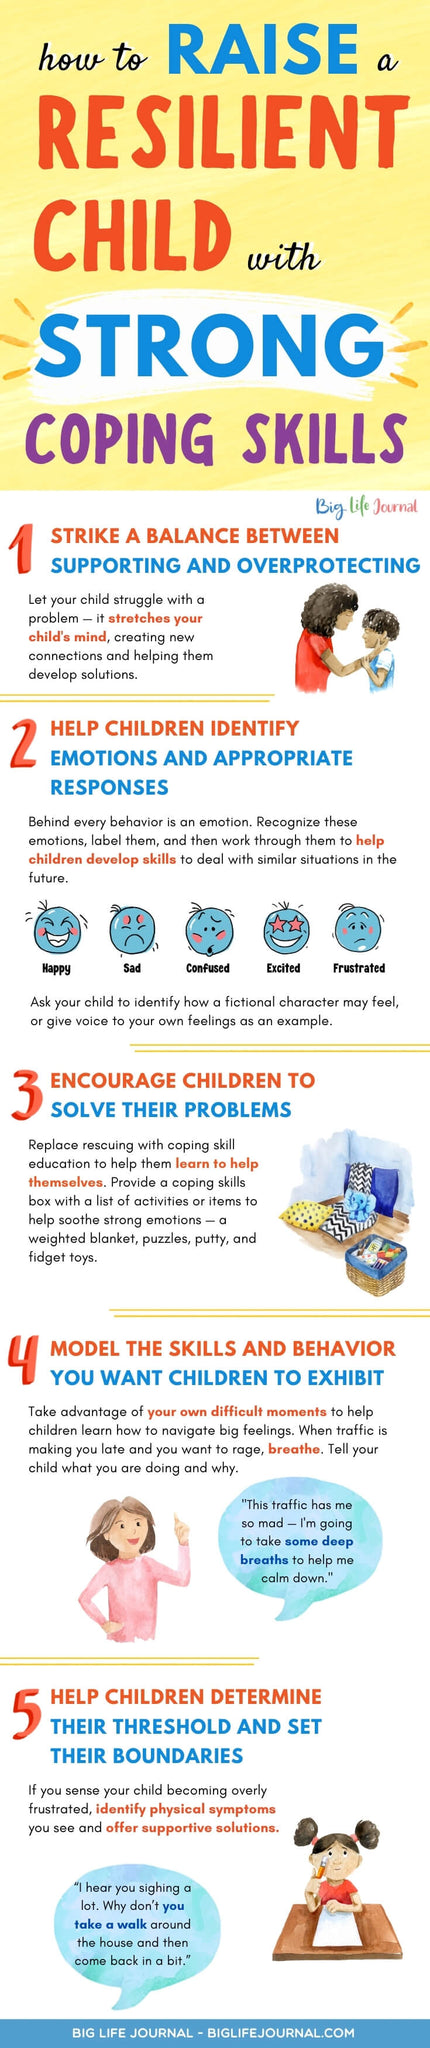 Raise Resilient Child with Strong Coping Skills